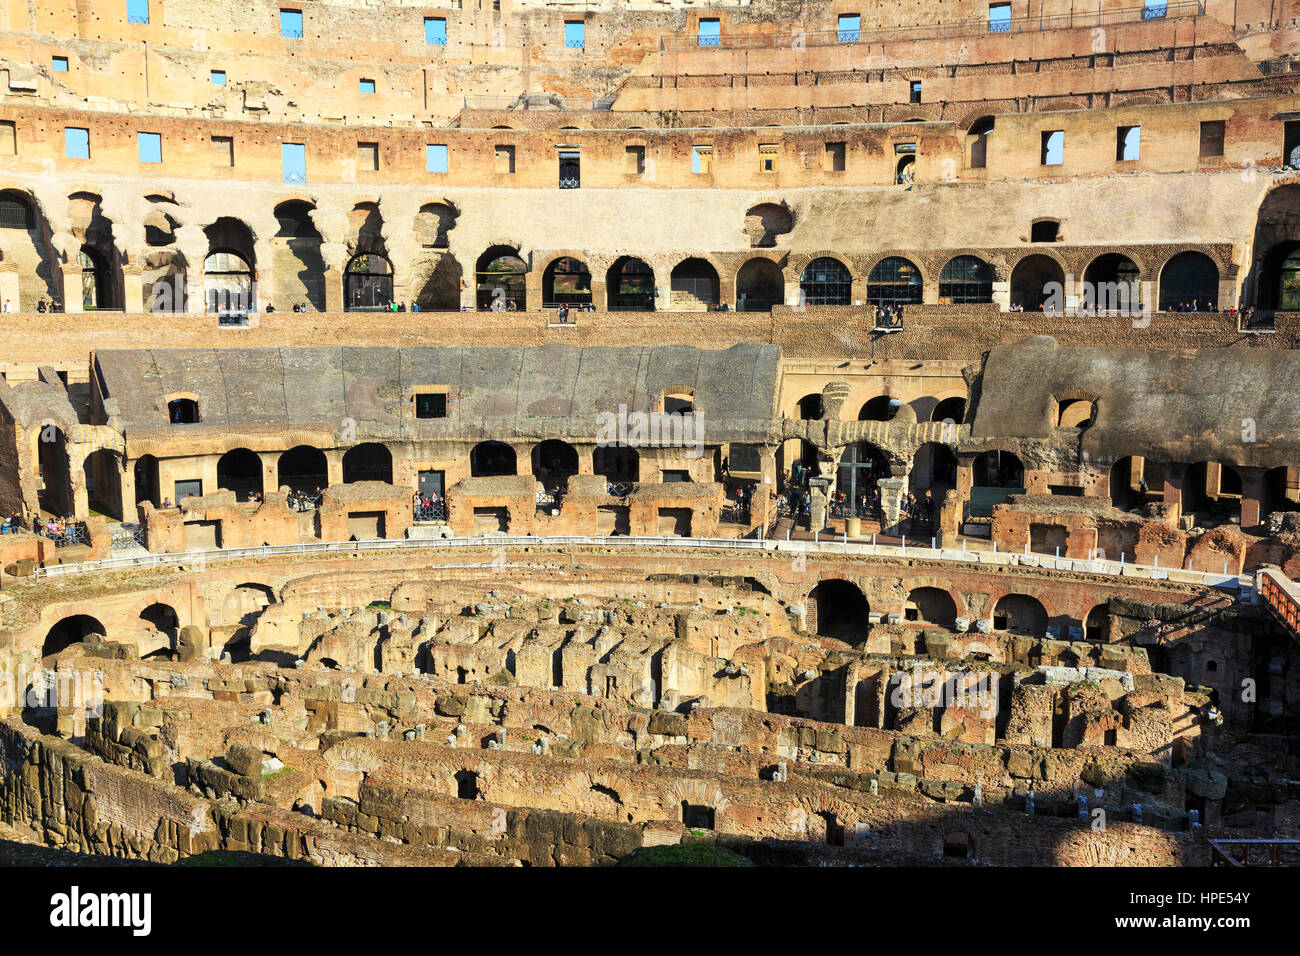 Interior of the 1st century Flaviam amphitheatre known as the Colosseum, Rome, Italy Stock Photo